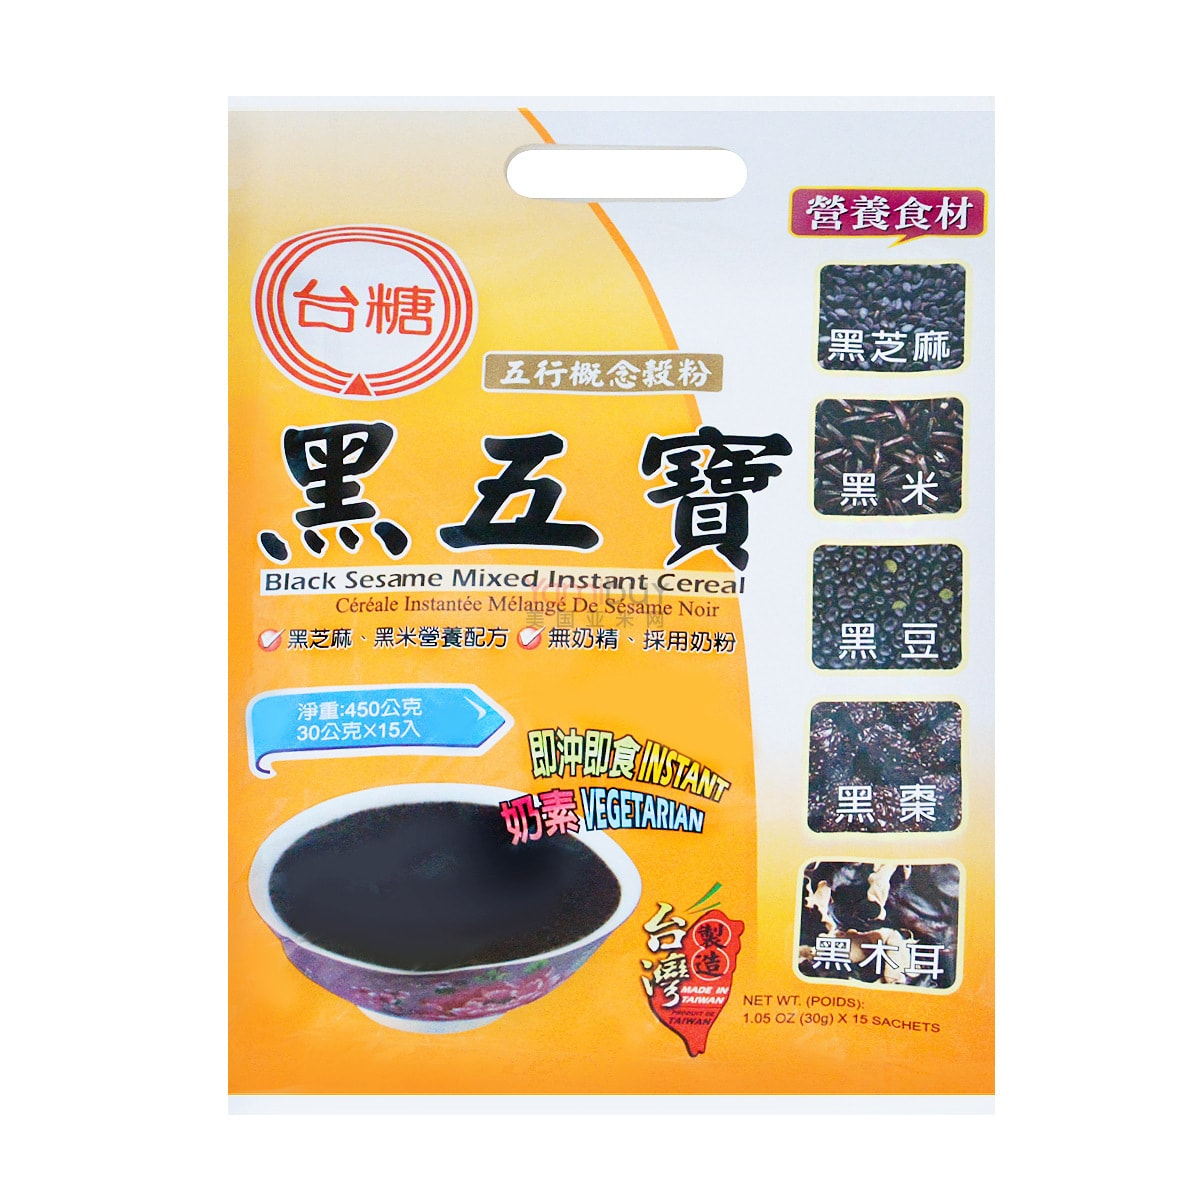 TAISUGAR Black Sesame Mixed Instant Cereal 450g